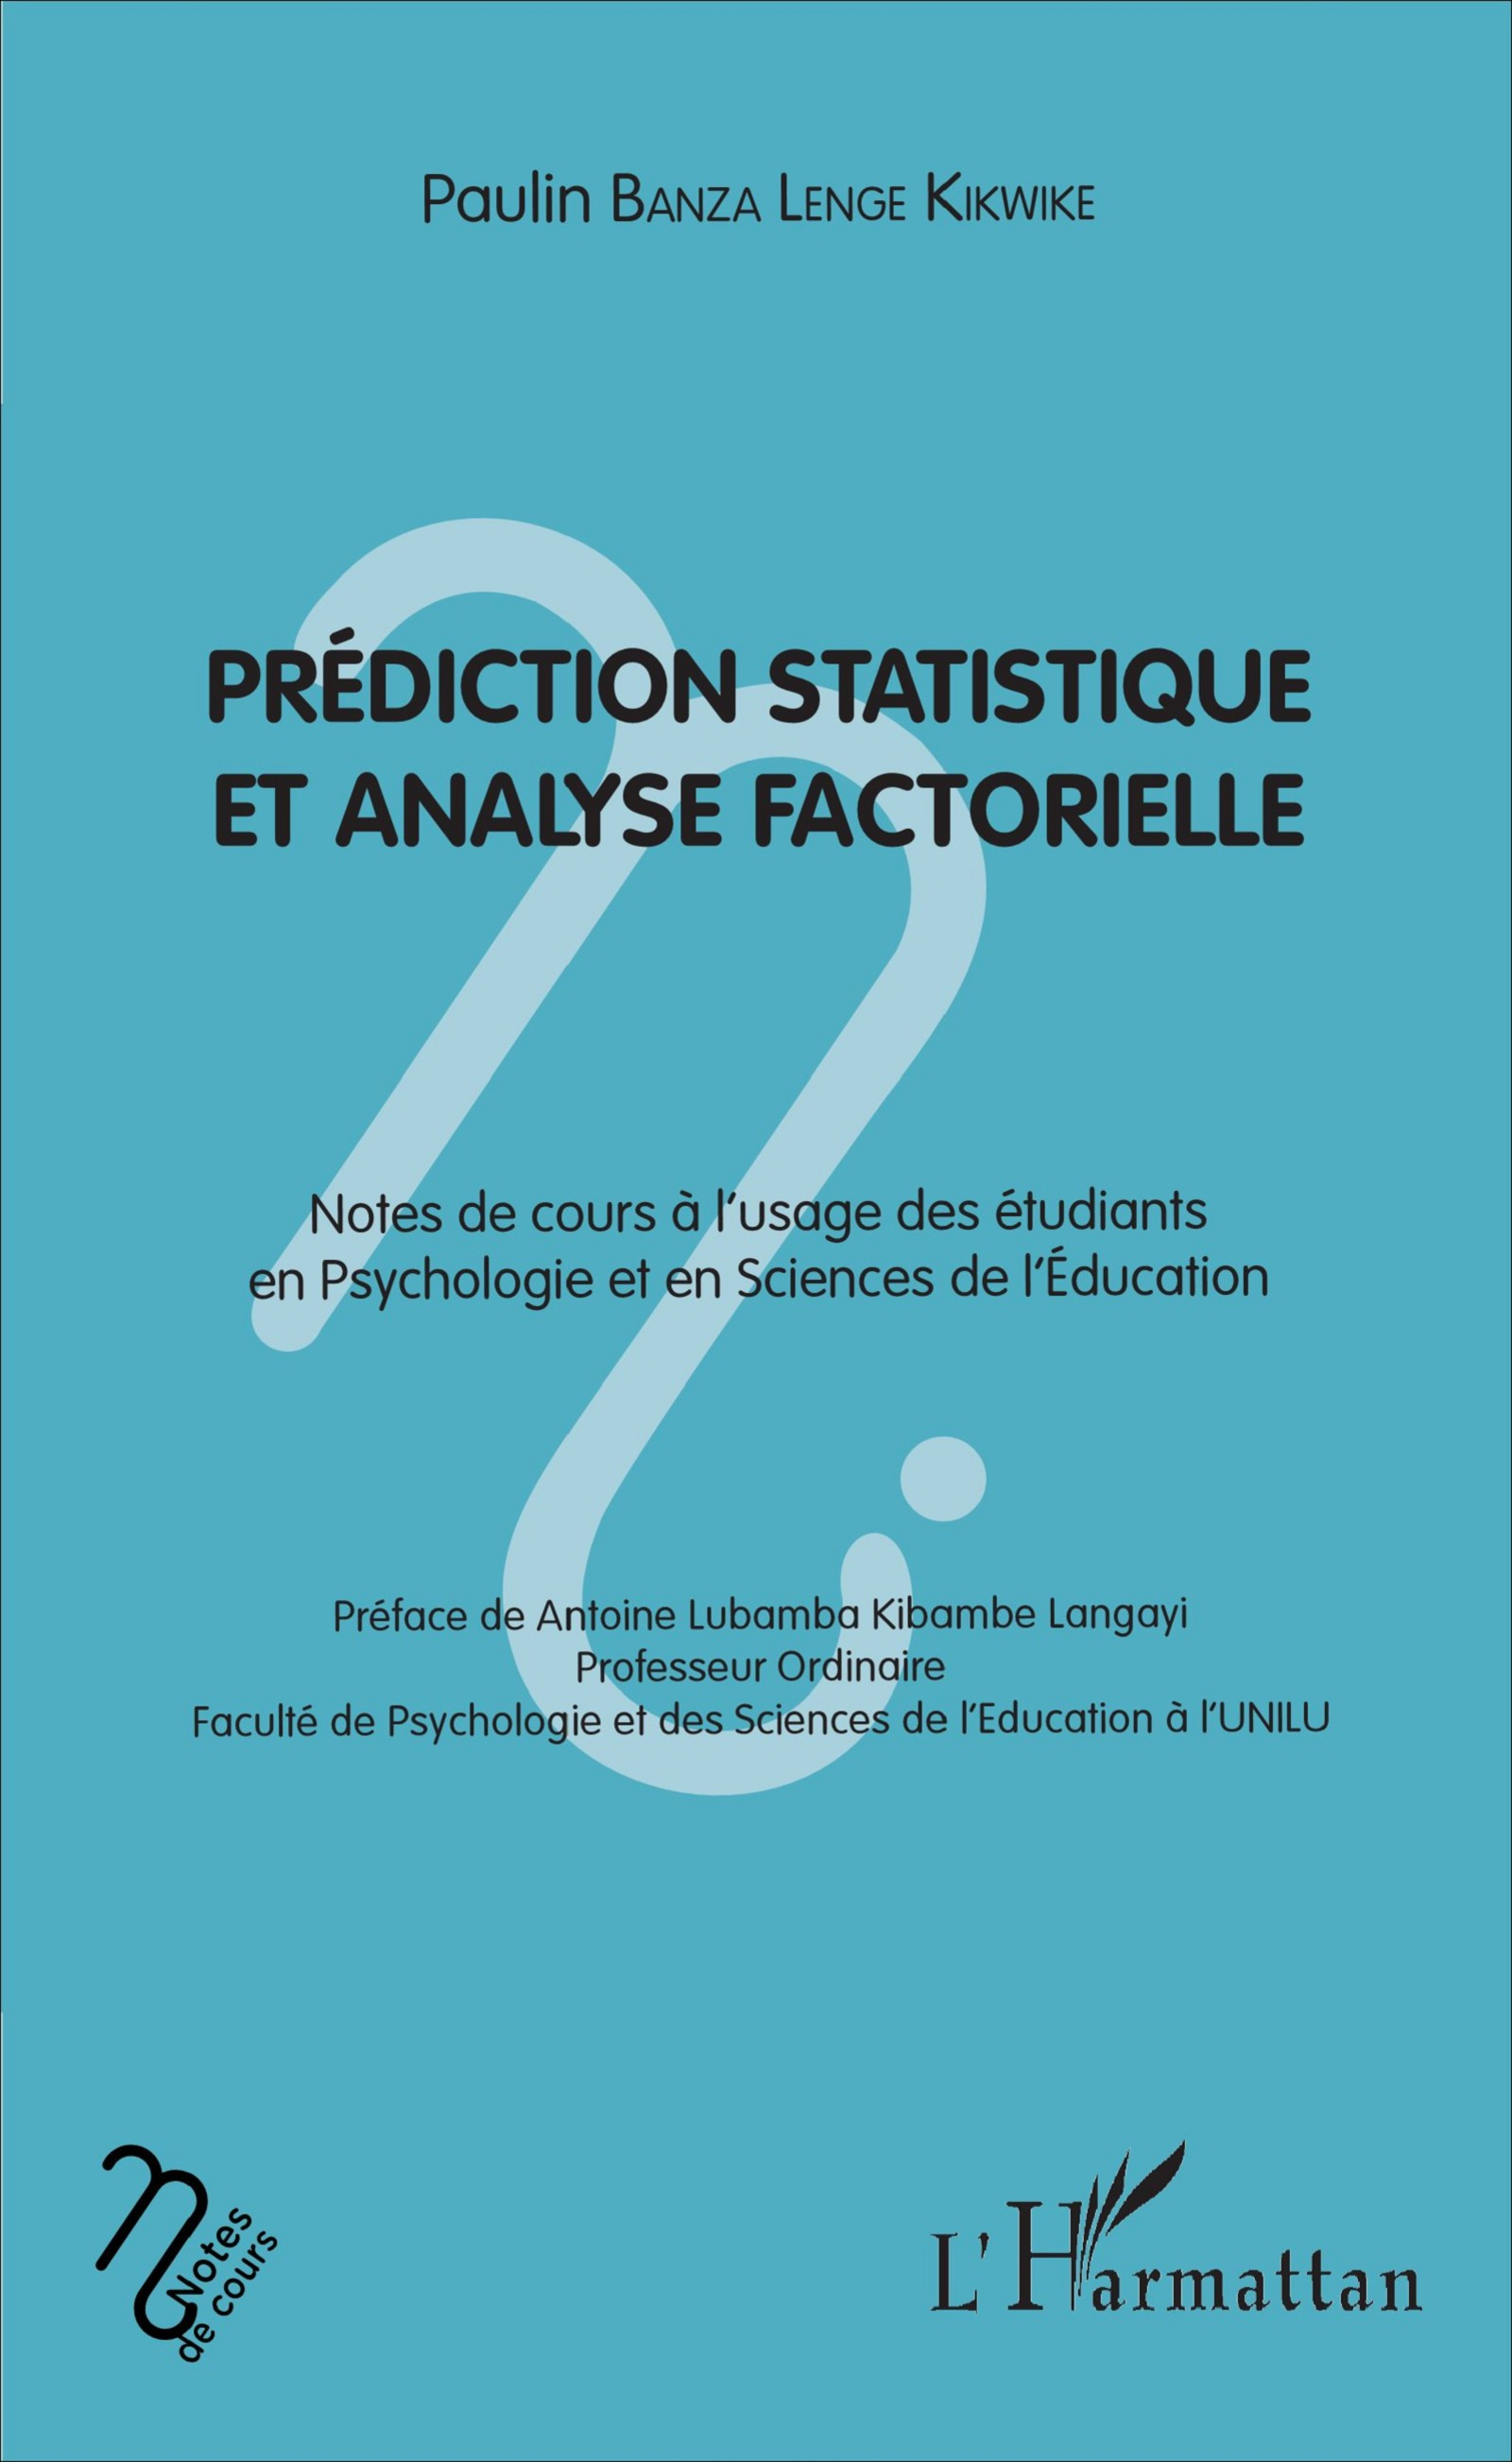 Prédiction statistique et analyse factorielle